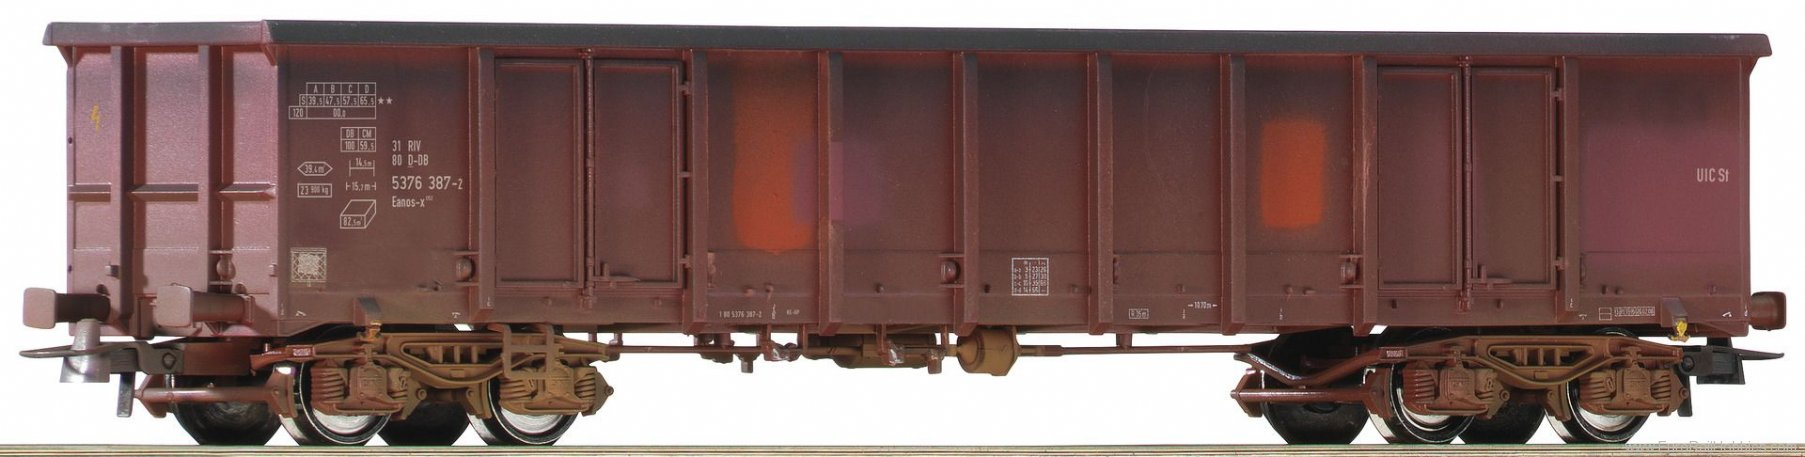 Roco 75996 31805376 442-5, open goods wagon weathered, D